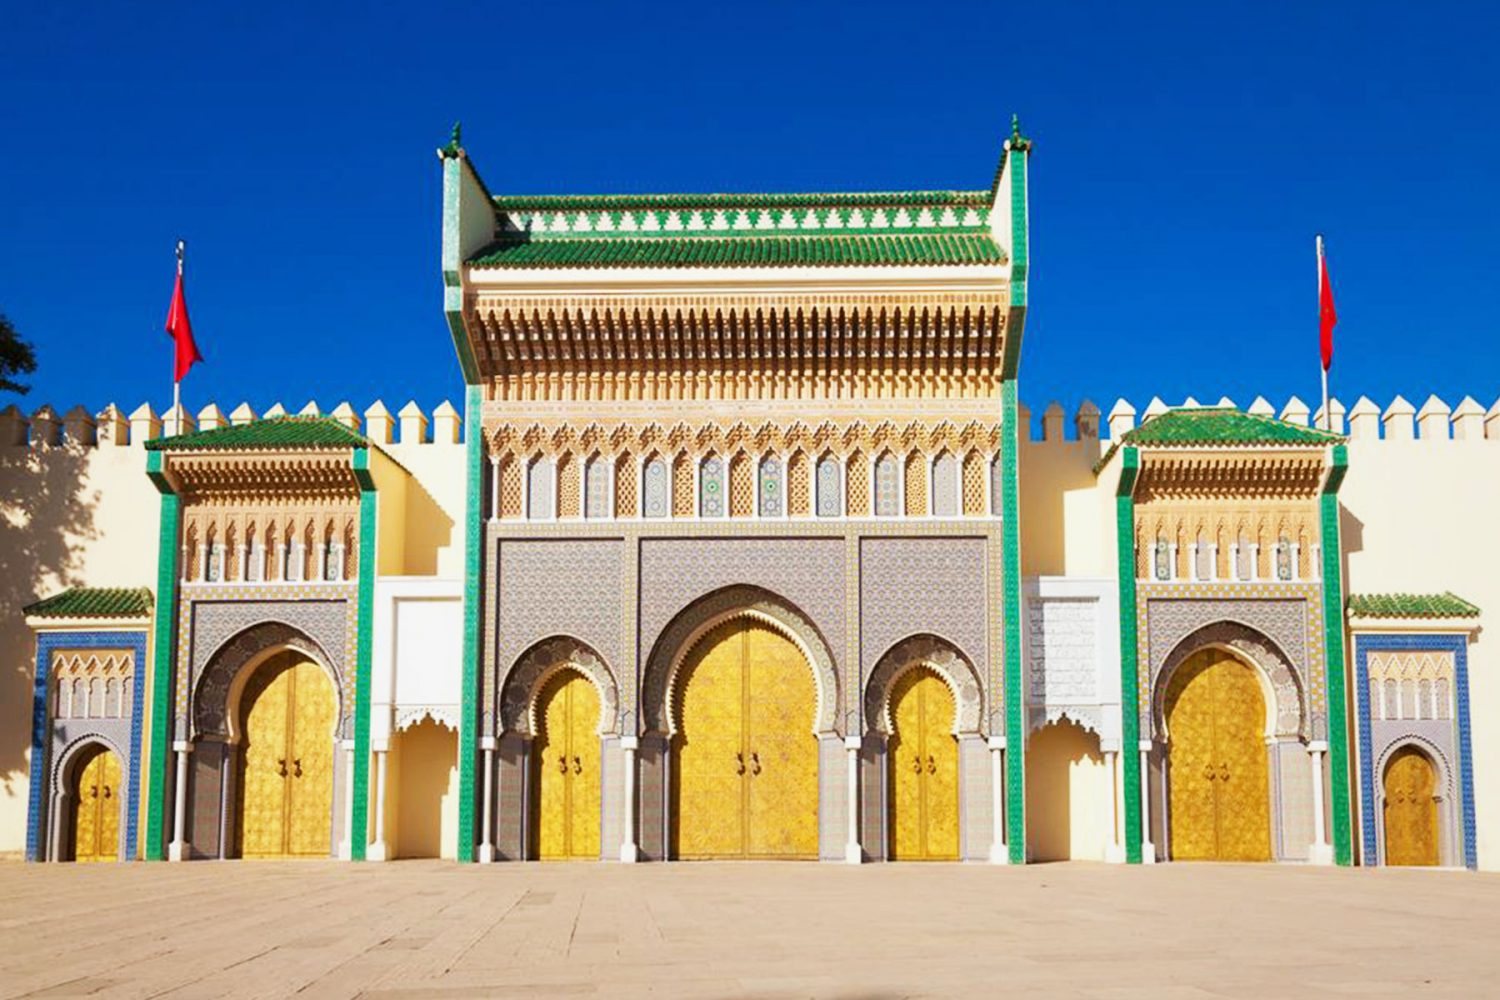 Imperial Cities & Desert 7 Days Marrakech